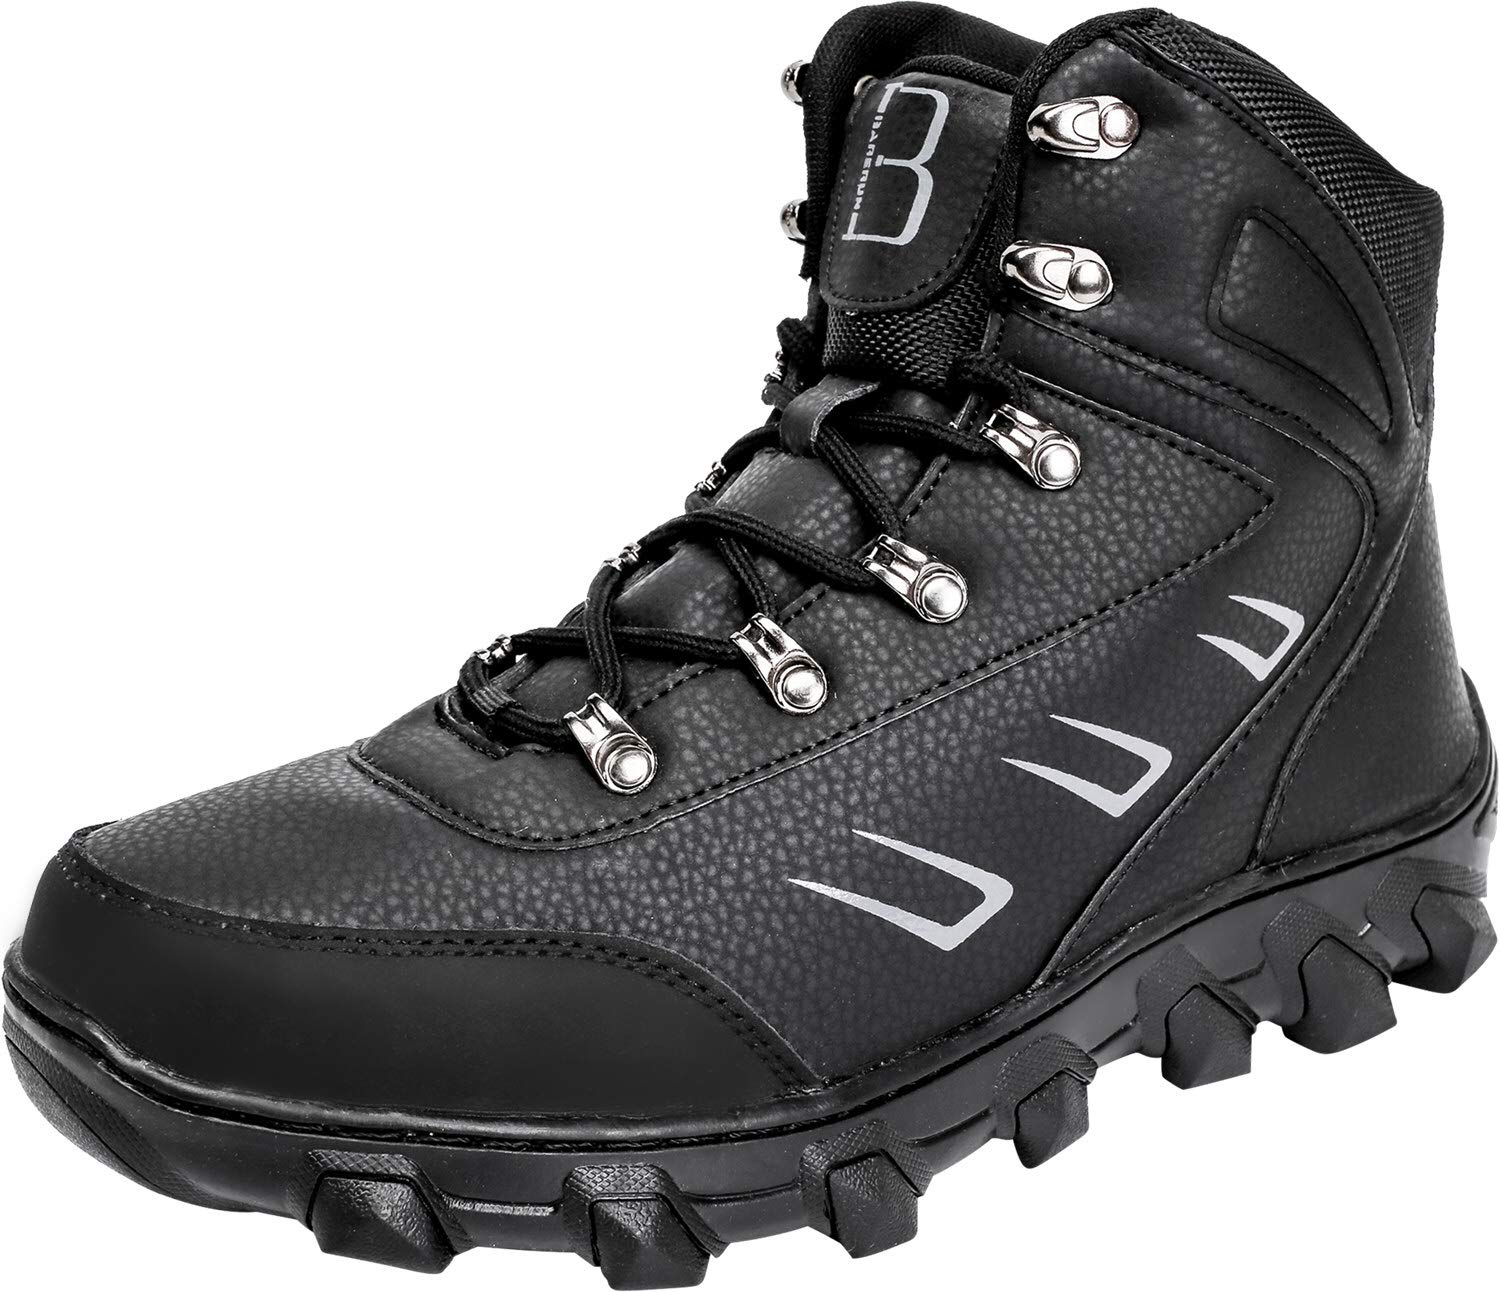 Barerun Mens Leather Snow Boots Lace Up High Top Winter Shoes Black 15 D(M) US